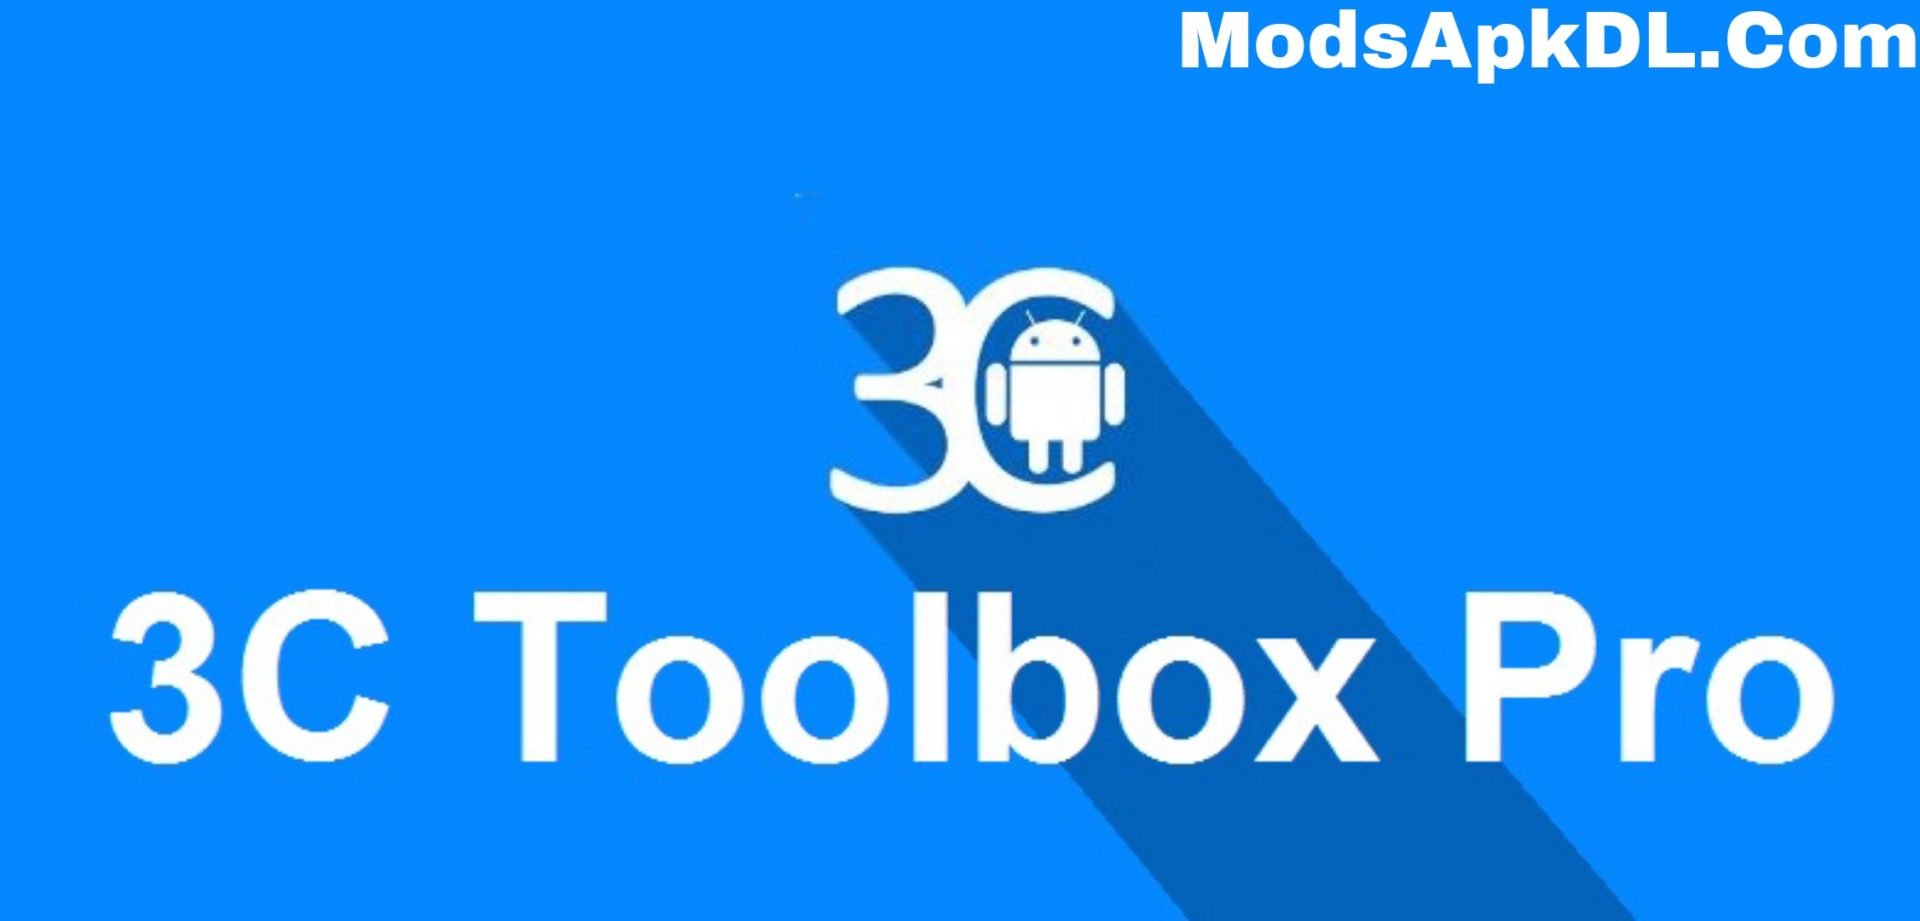 3C All-in-One Toolbox Mod APK Download For Android